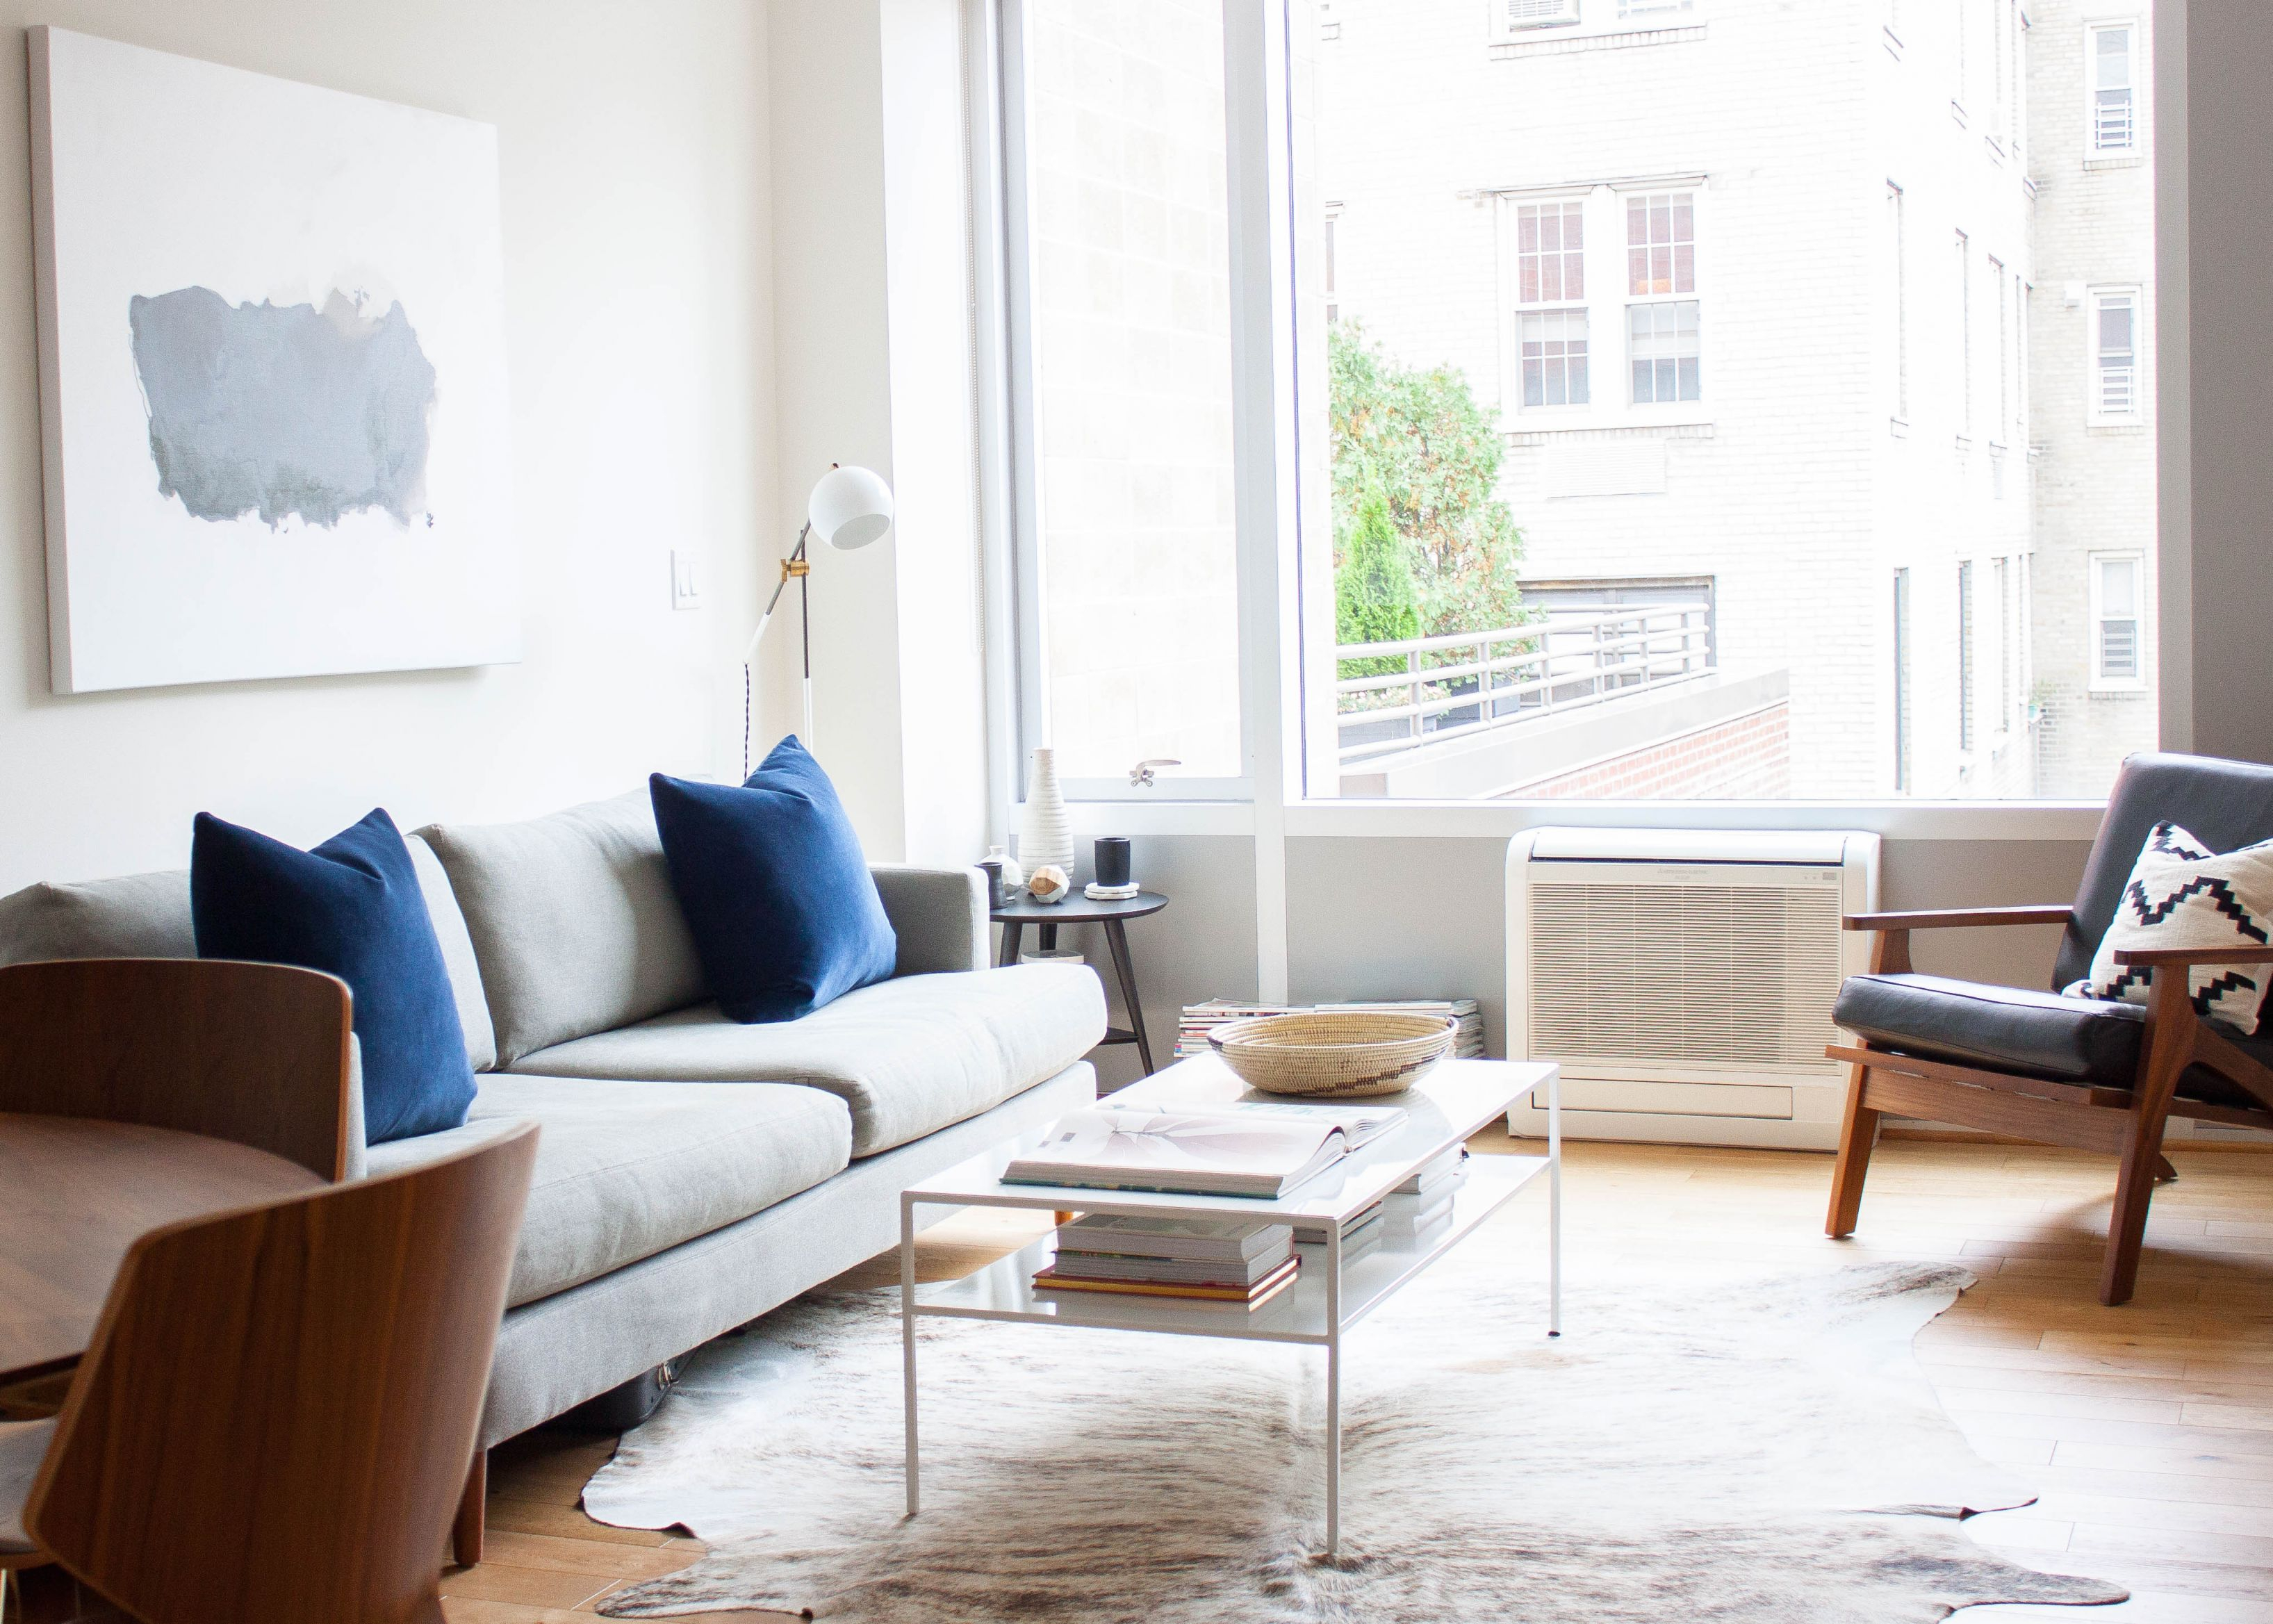 Best Small Living Room Design Ideas | Apartment Therapy in ...